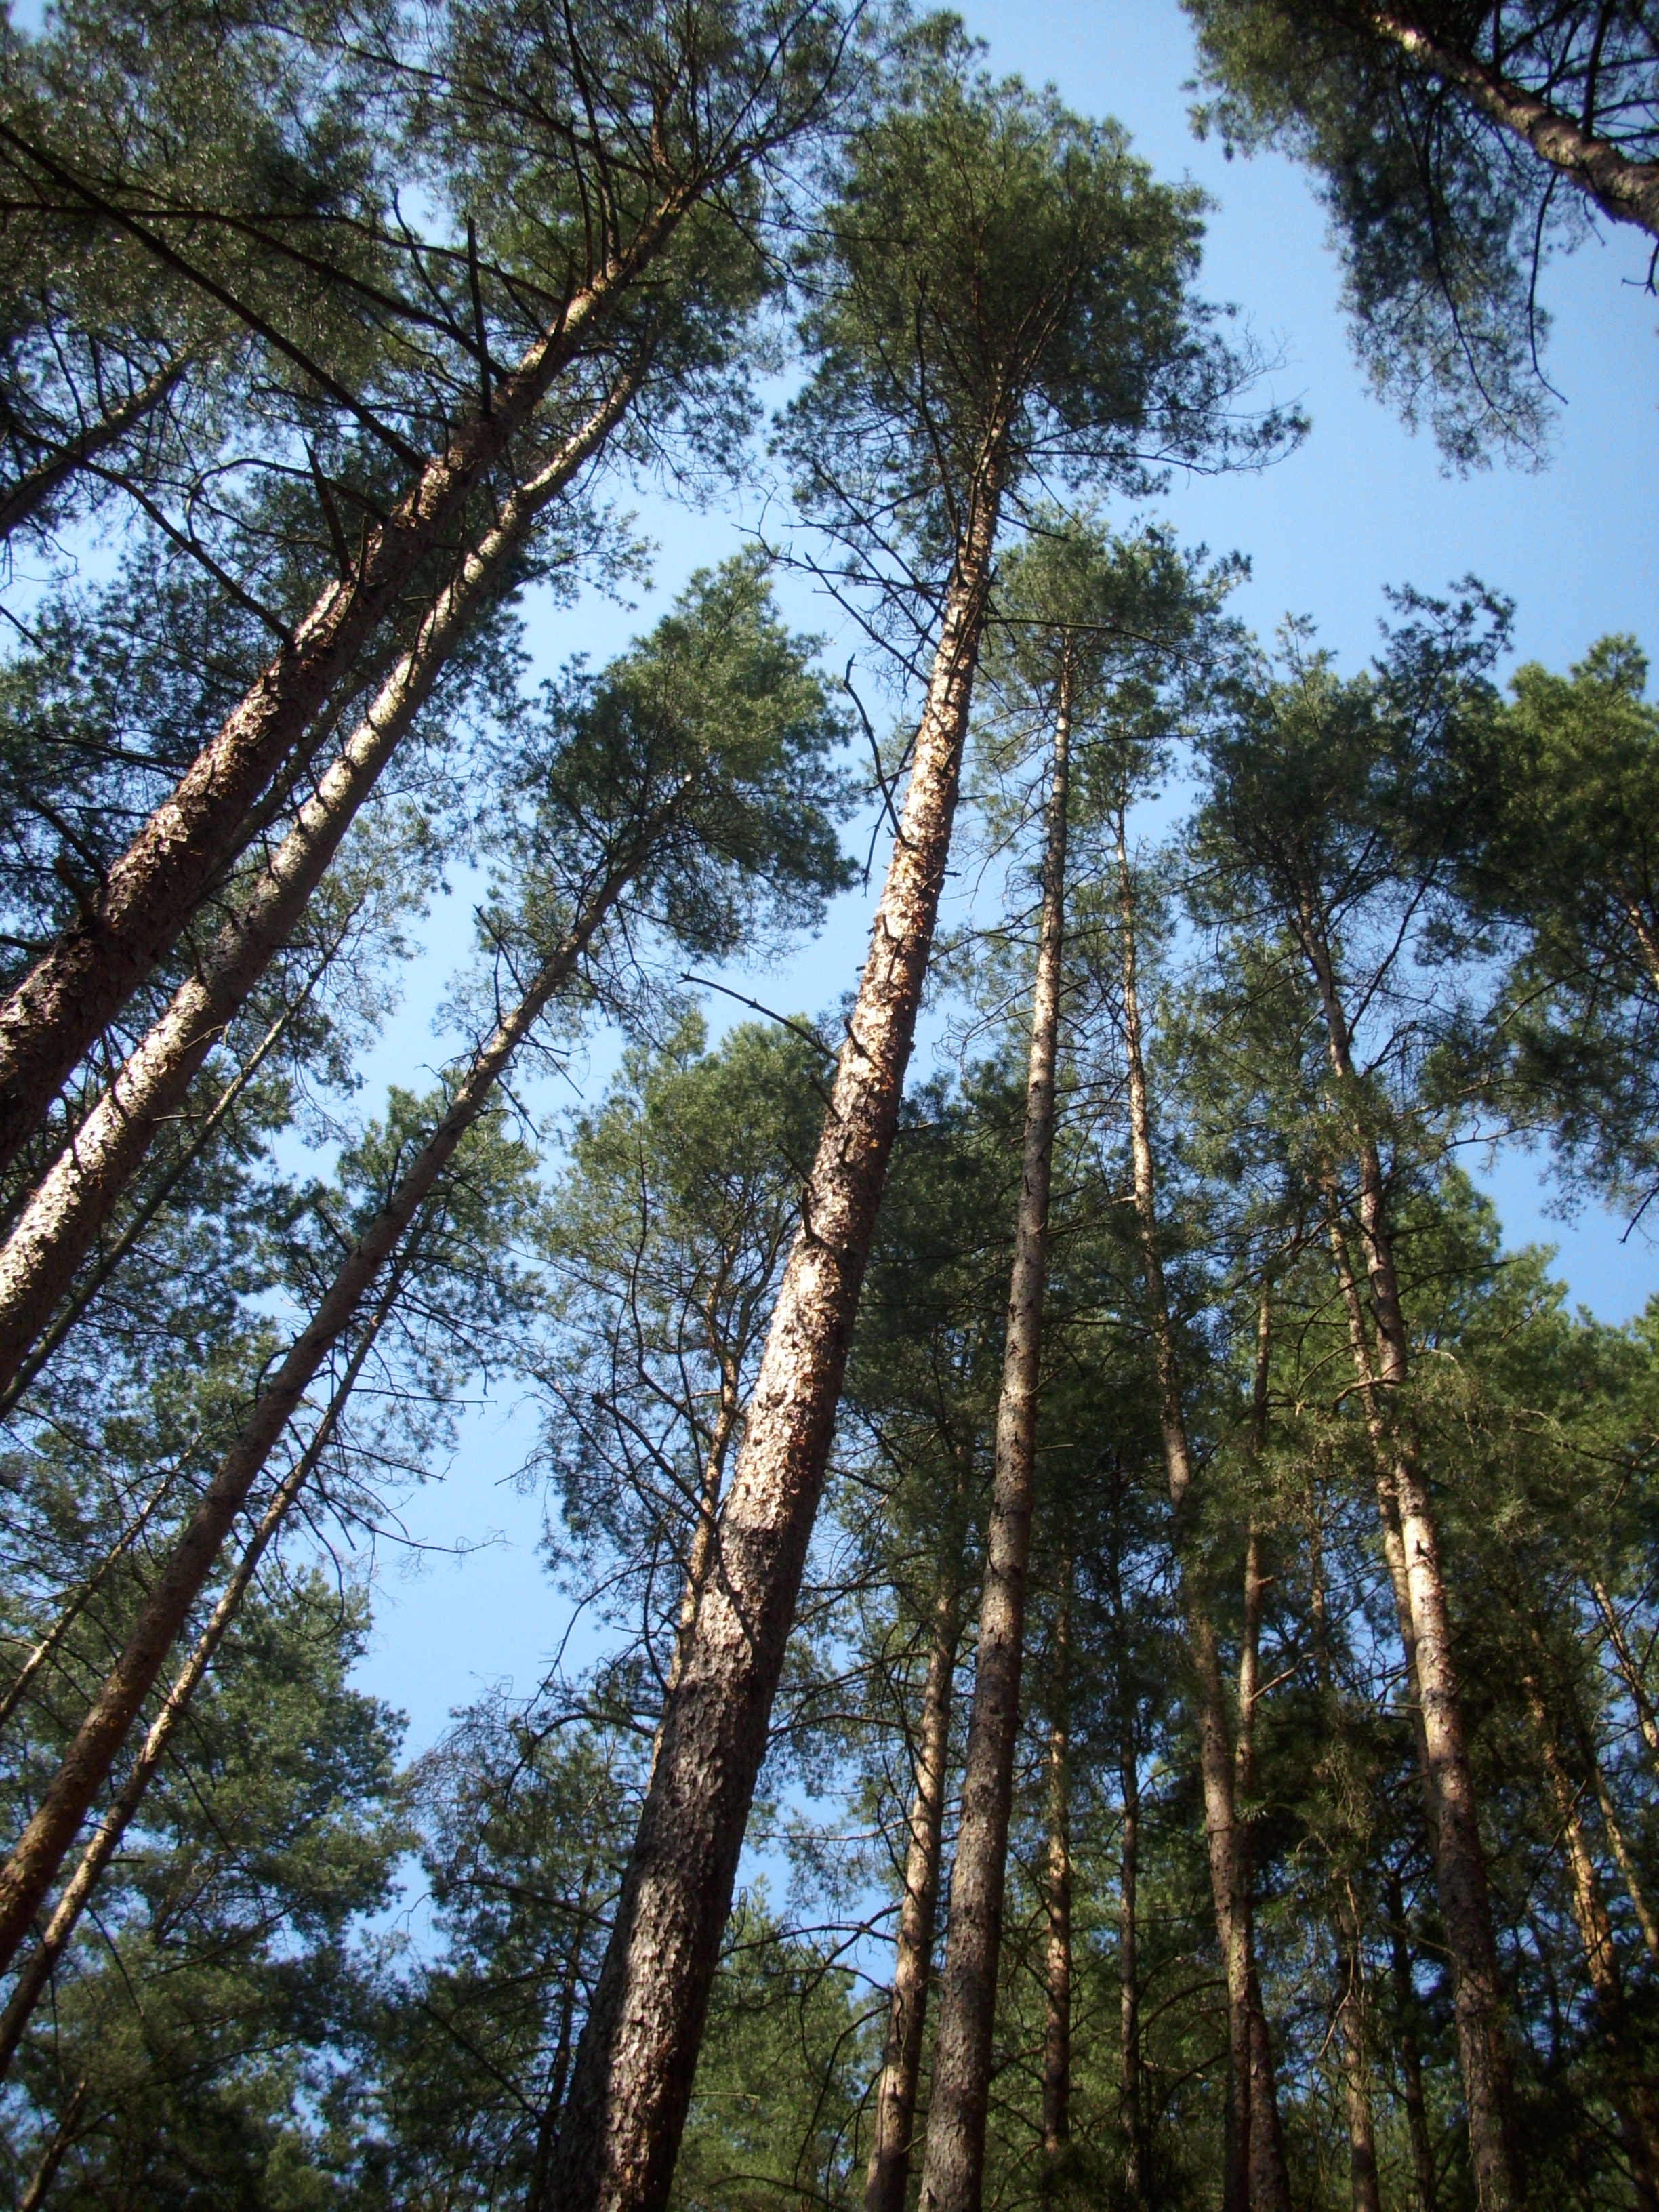 http://upload.wikimedia.org/wikipedia/commons/3/3f/Trees_in_woods,_Czech_republic.jpg